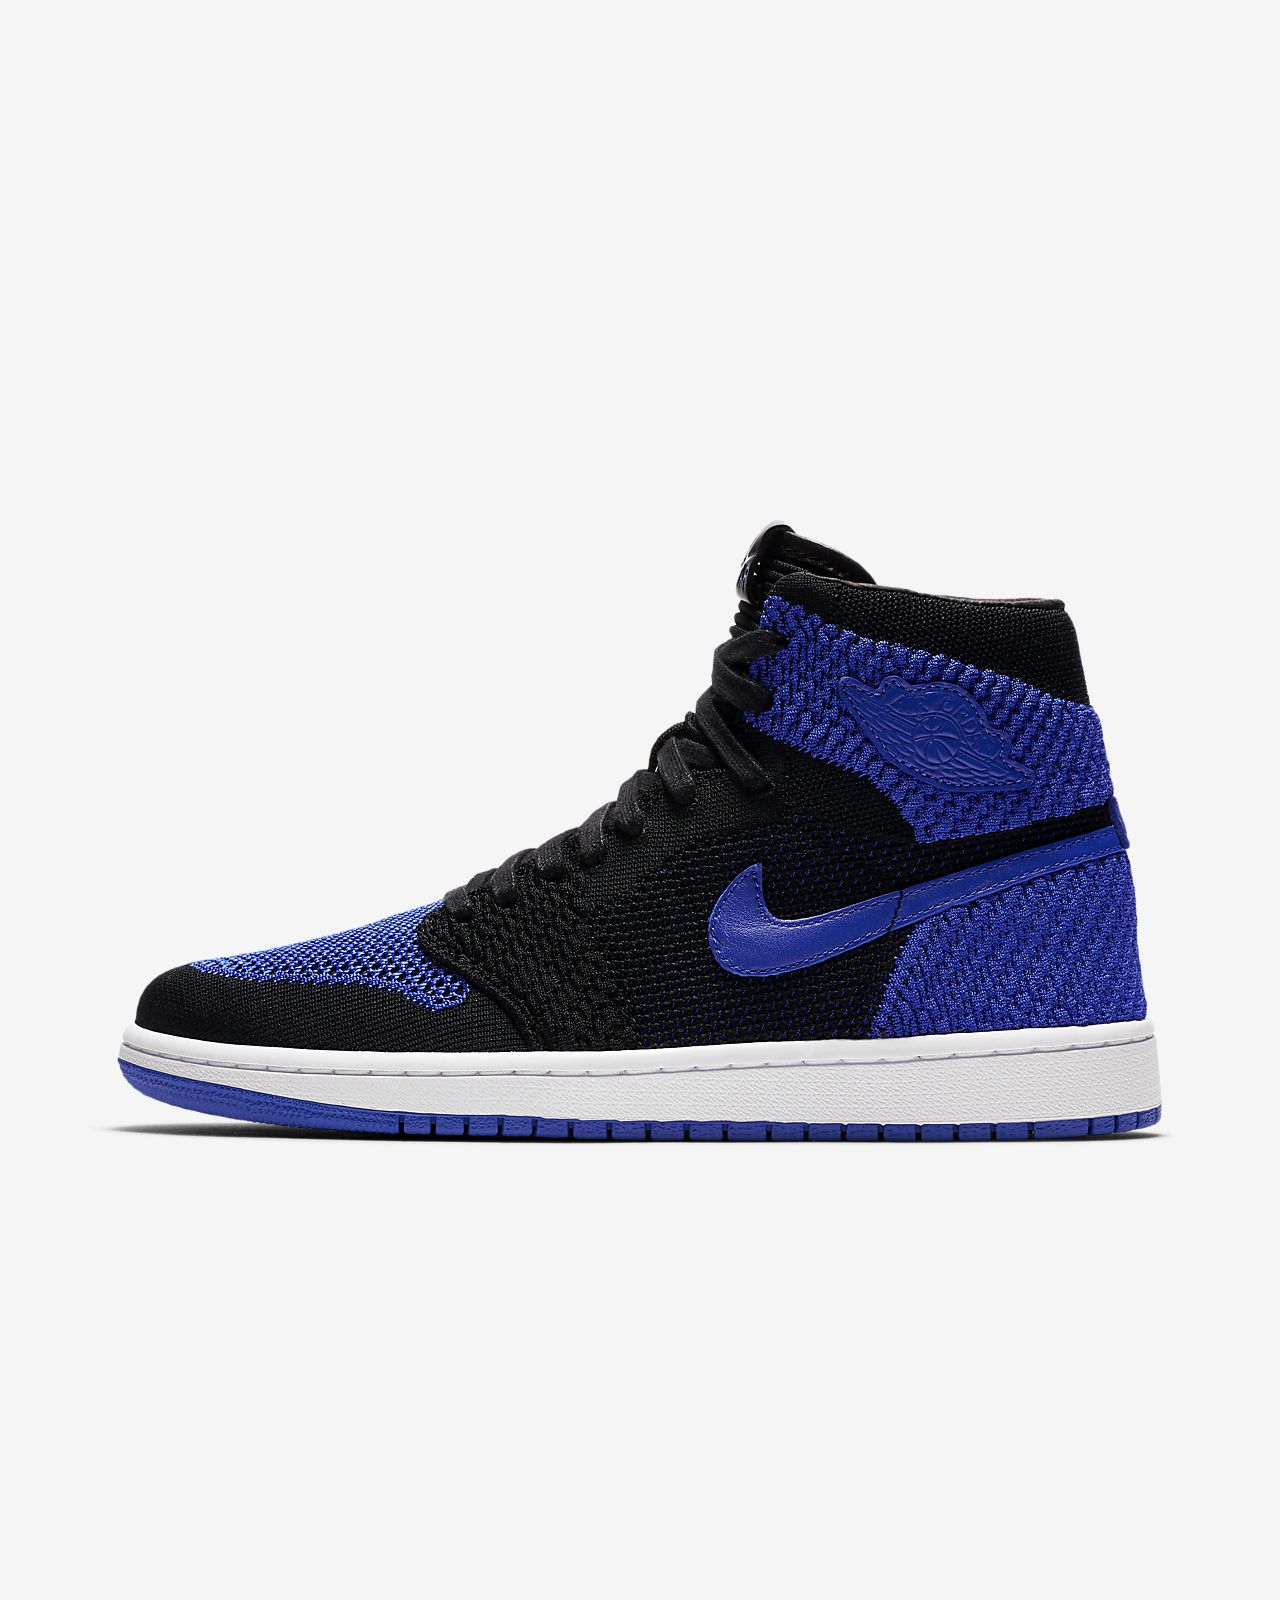 d3f0139db47d Air Jordan 1 Retro High Flyknit Men s Shoe. Nike.com AU